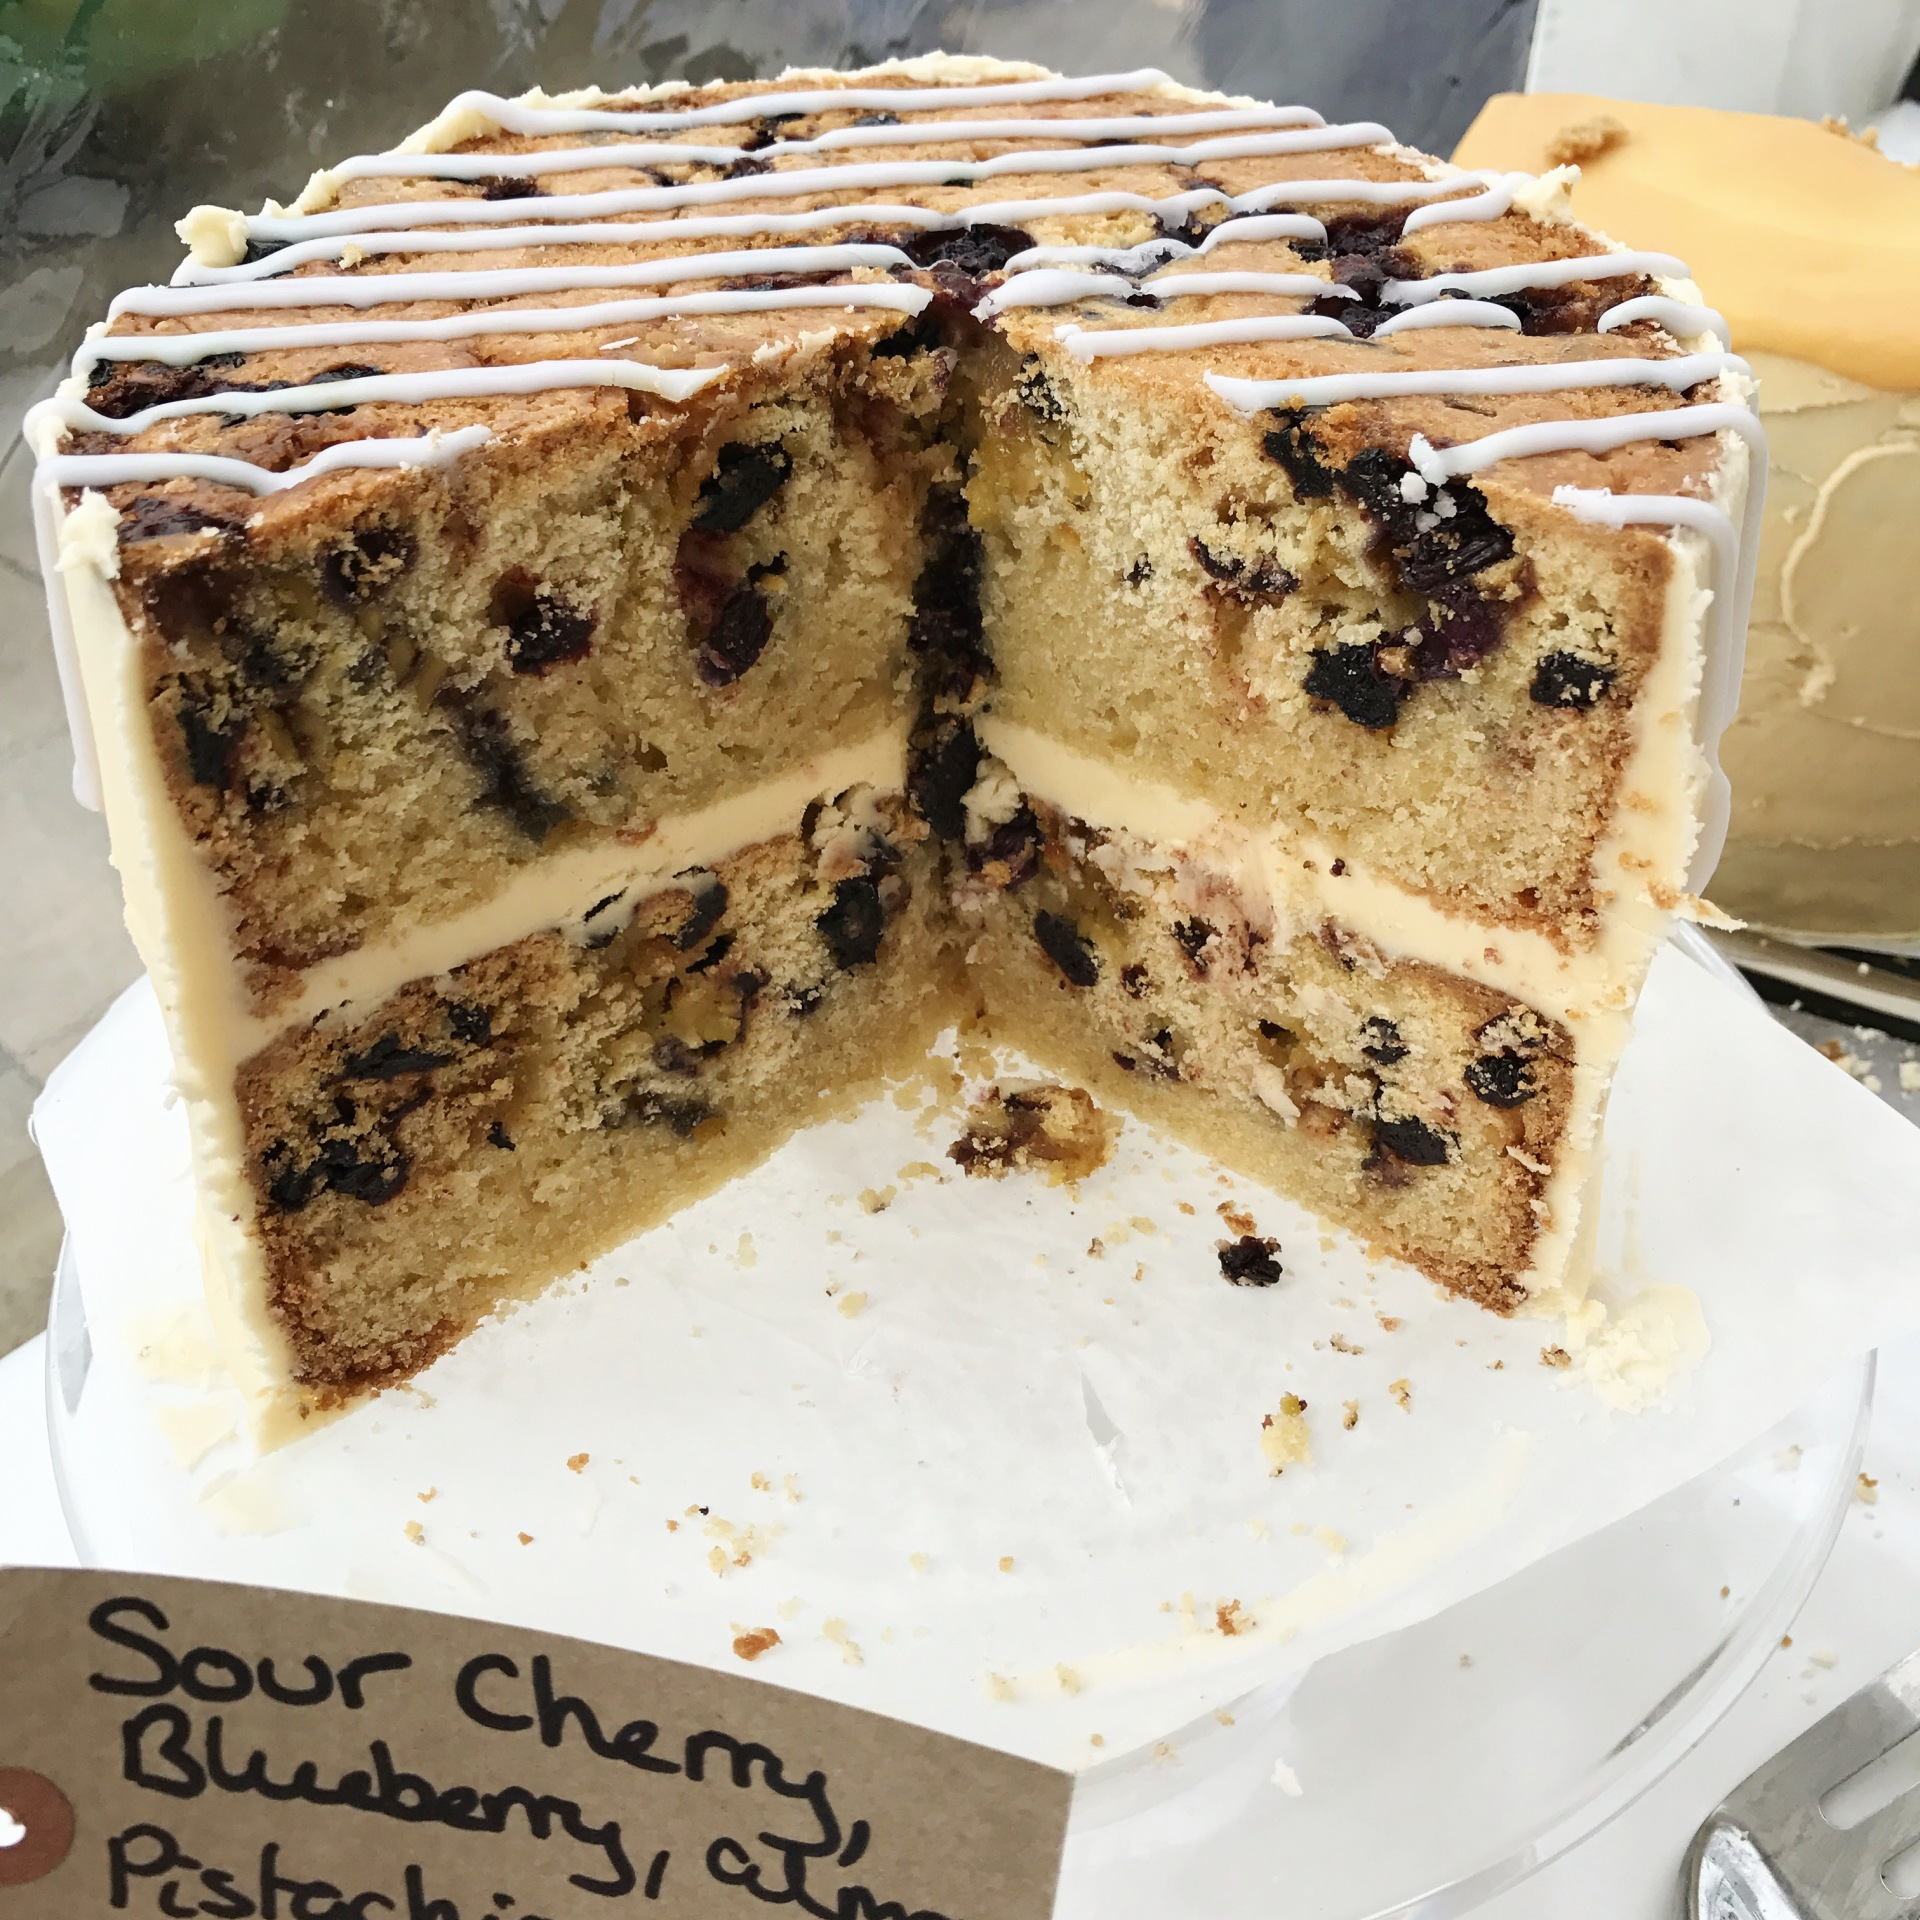 Sour Cherry, Blueberry, Pistachio, Almond and Orange Blossom Roll Cake